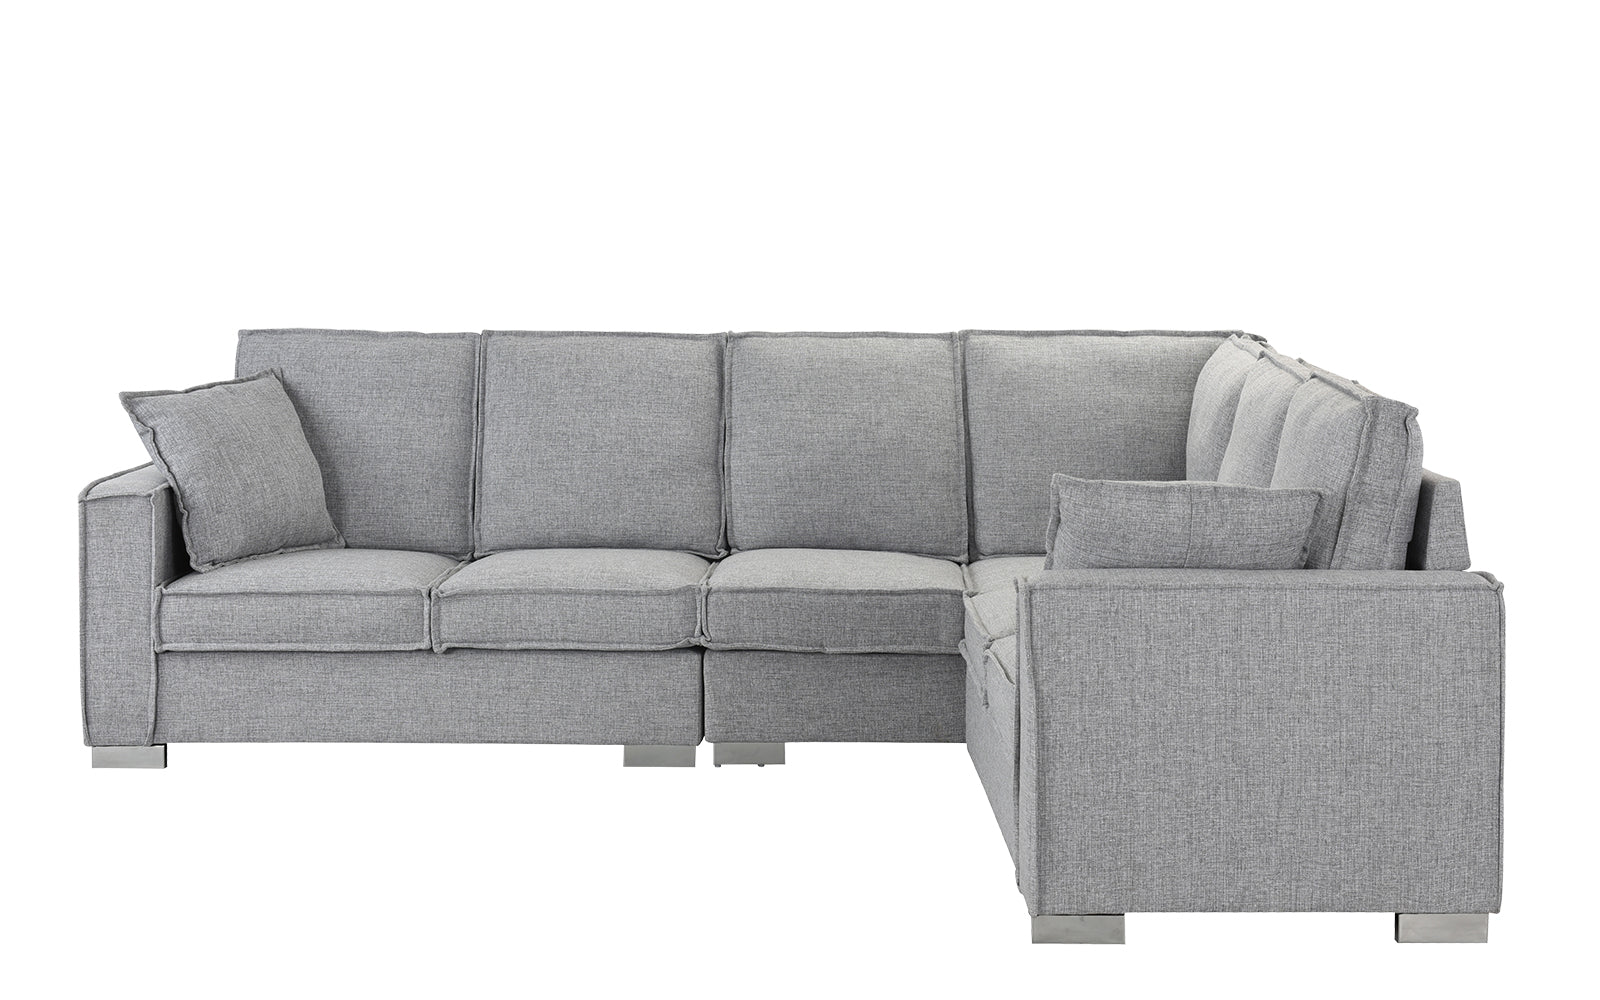 Seat Sectional Sofa Image